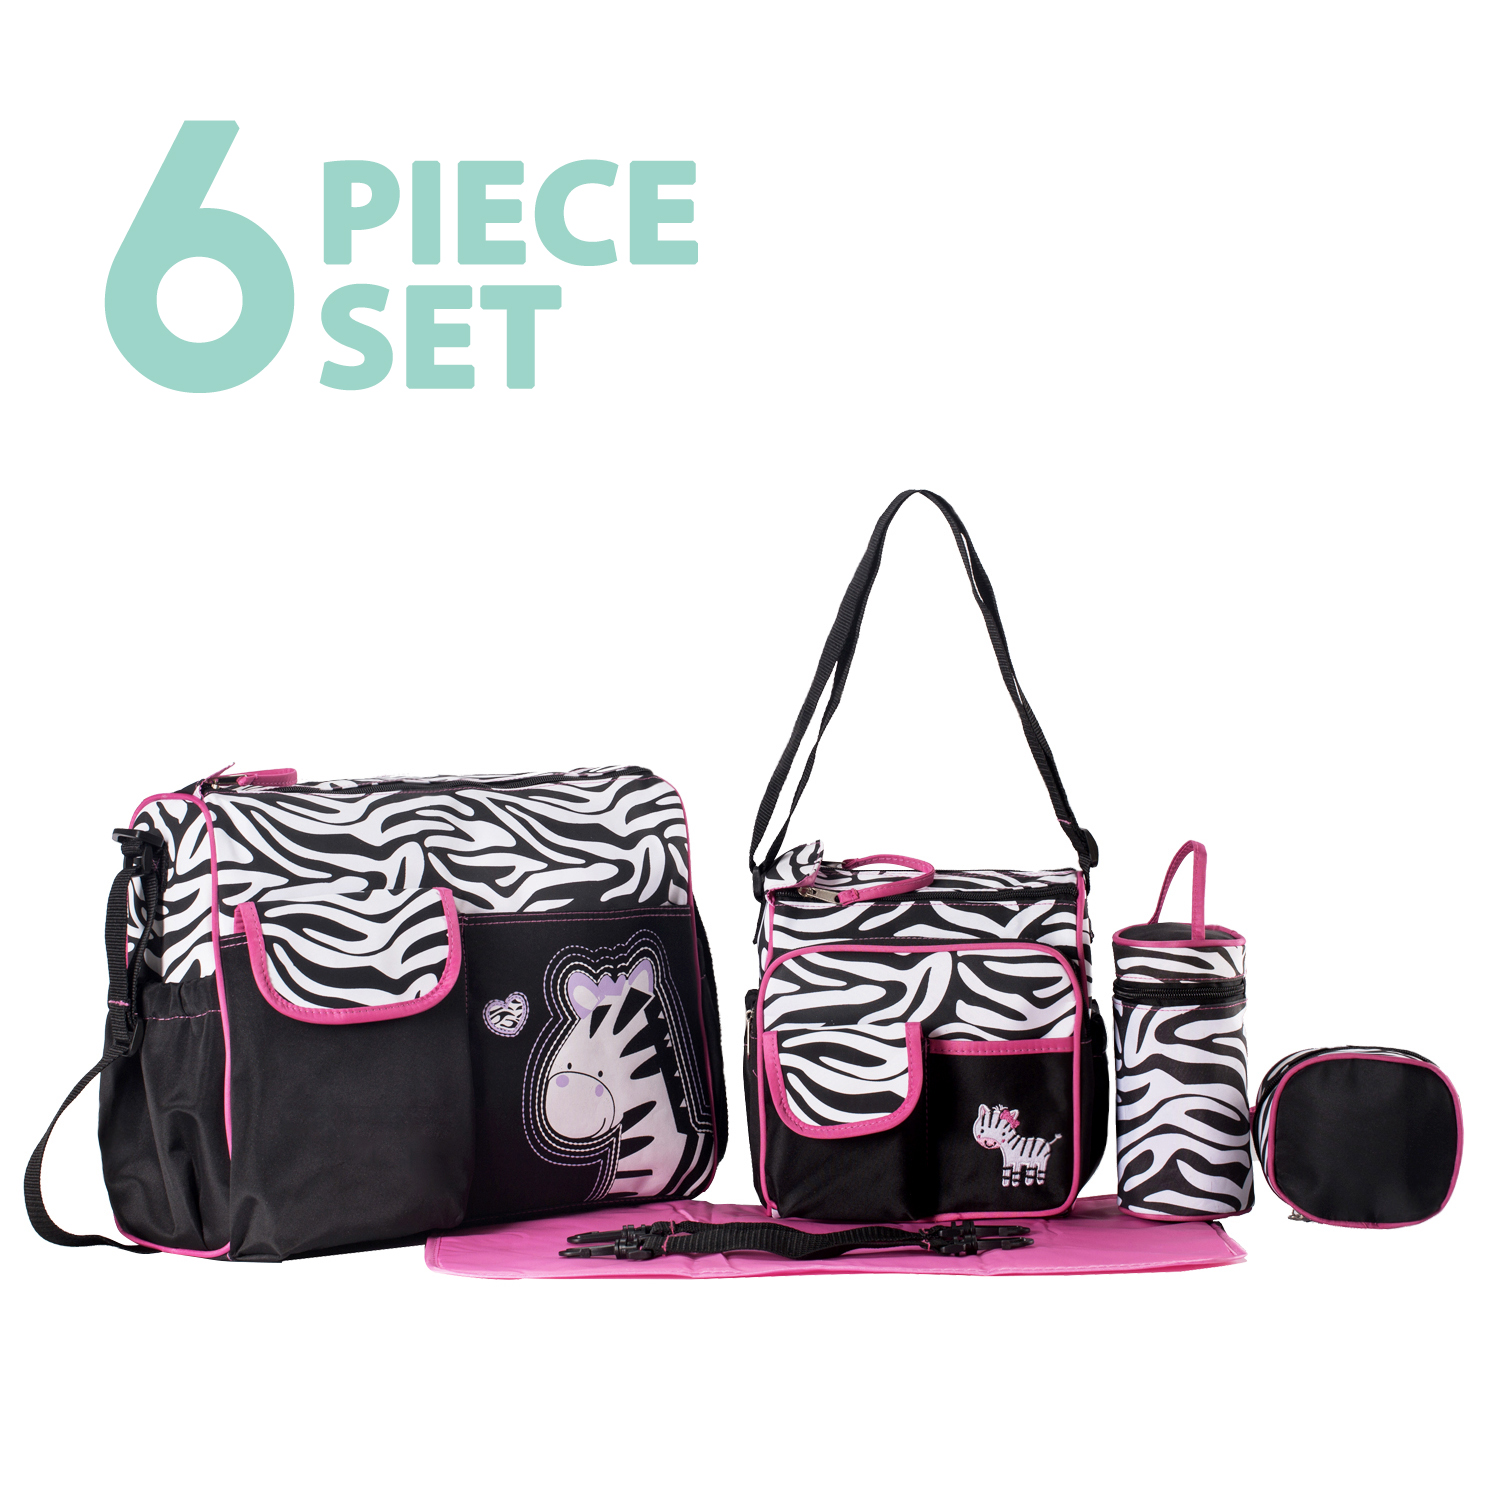 SoHo Collections, Large Tote Diaper Bag with Stroller Straps and Diaper Pad, 6 Piece Complete Set, Zebra